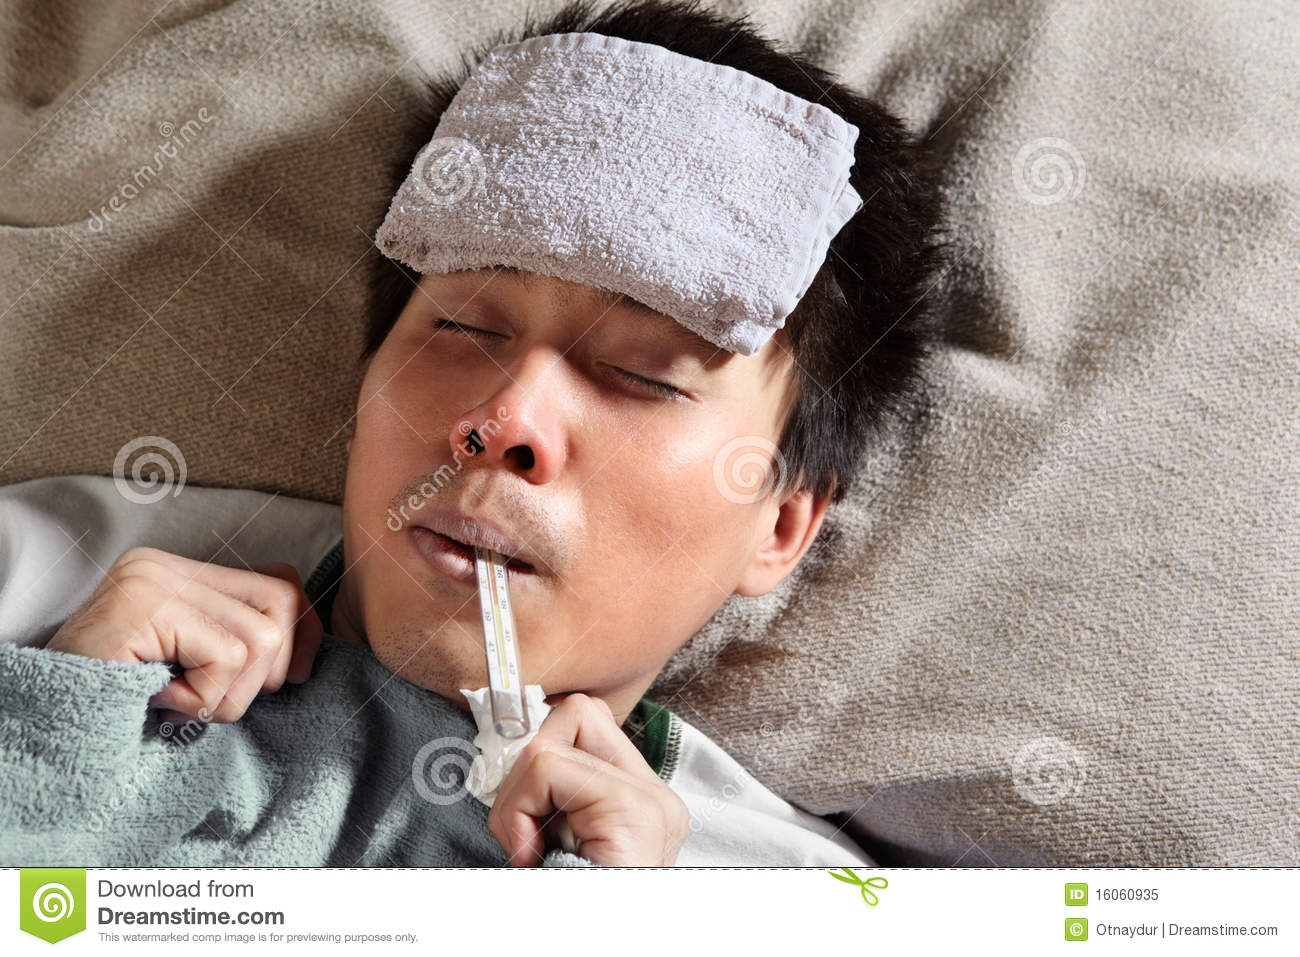 Sick Patient Pic : Sick Person Royalty Free Stock Photo - Image: 16060935